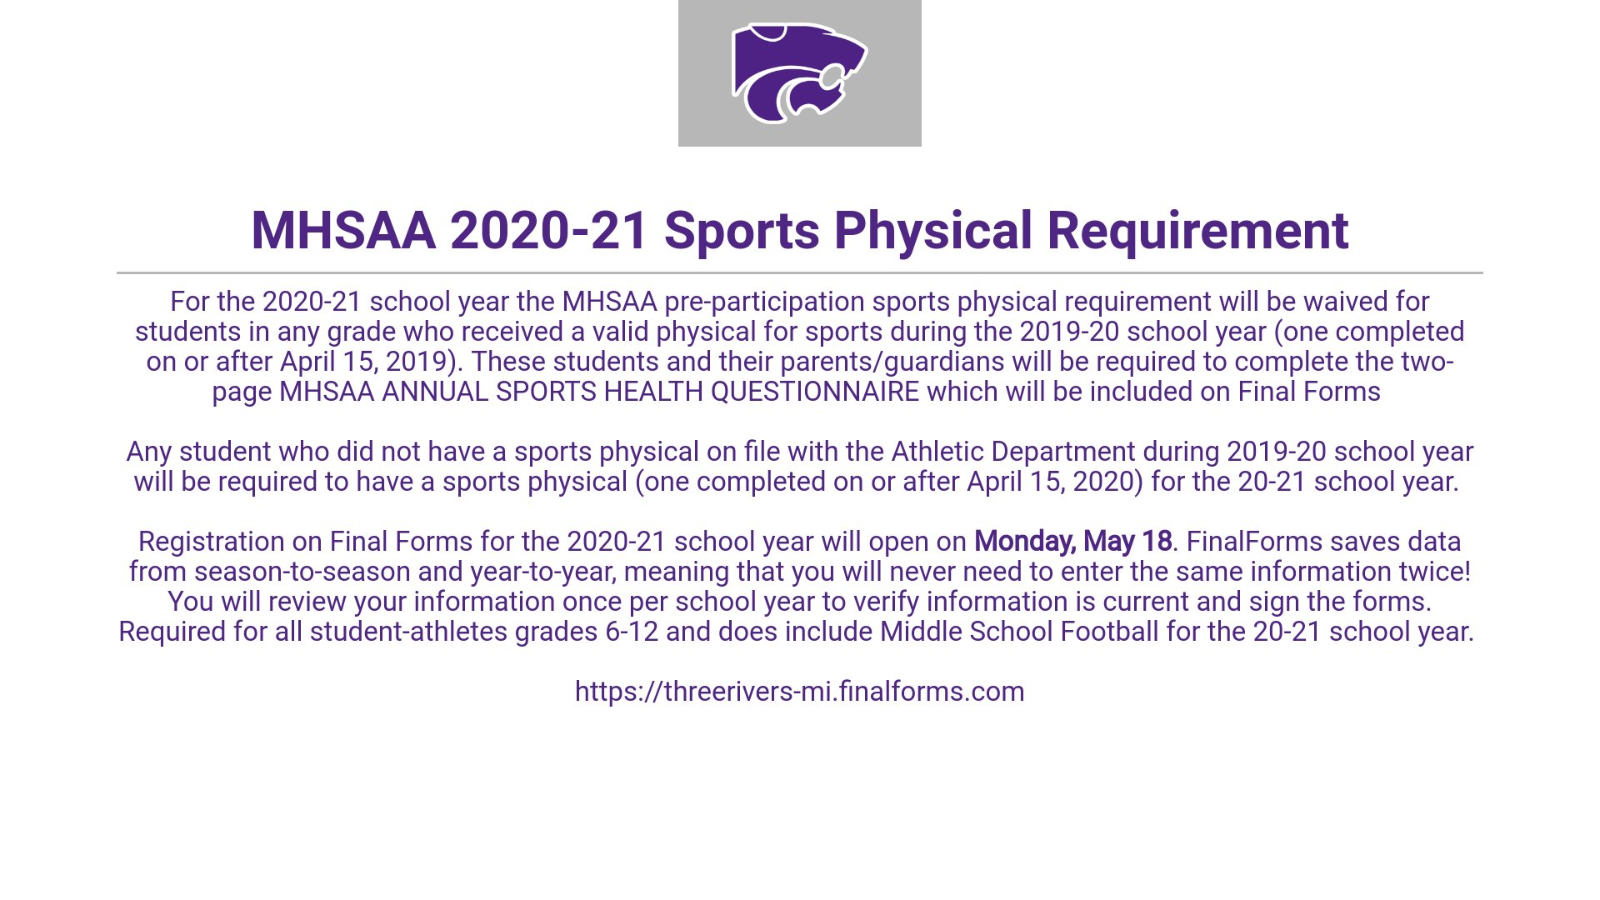 MHSAA announces 20-21 pre-participation sports physical requirements